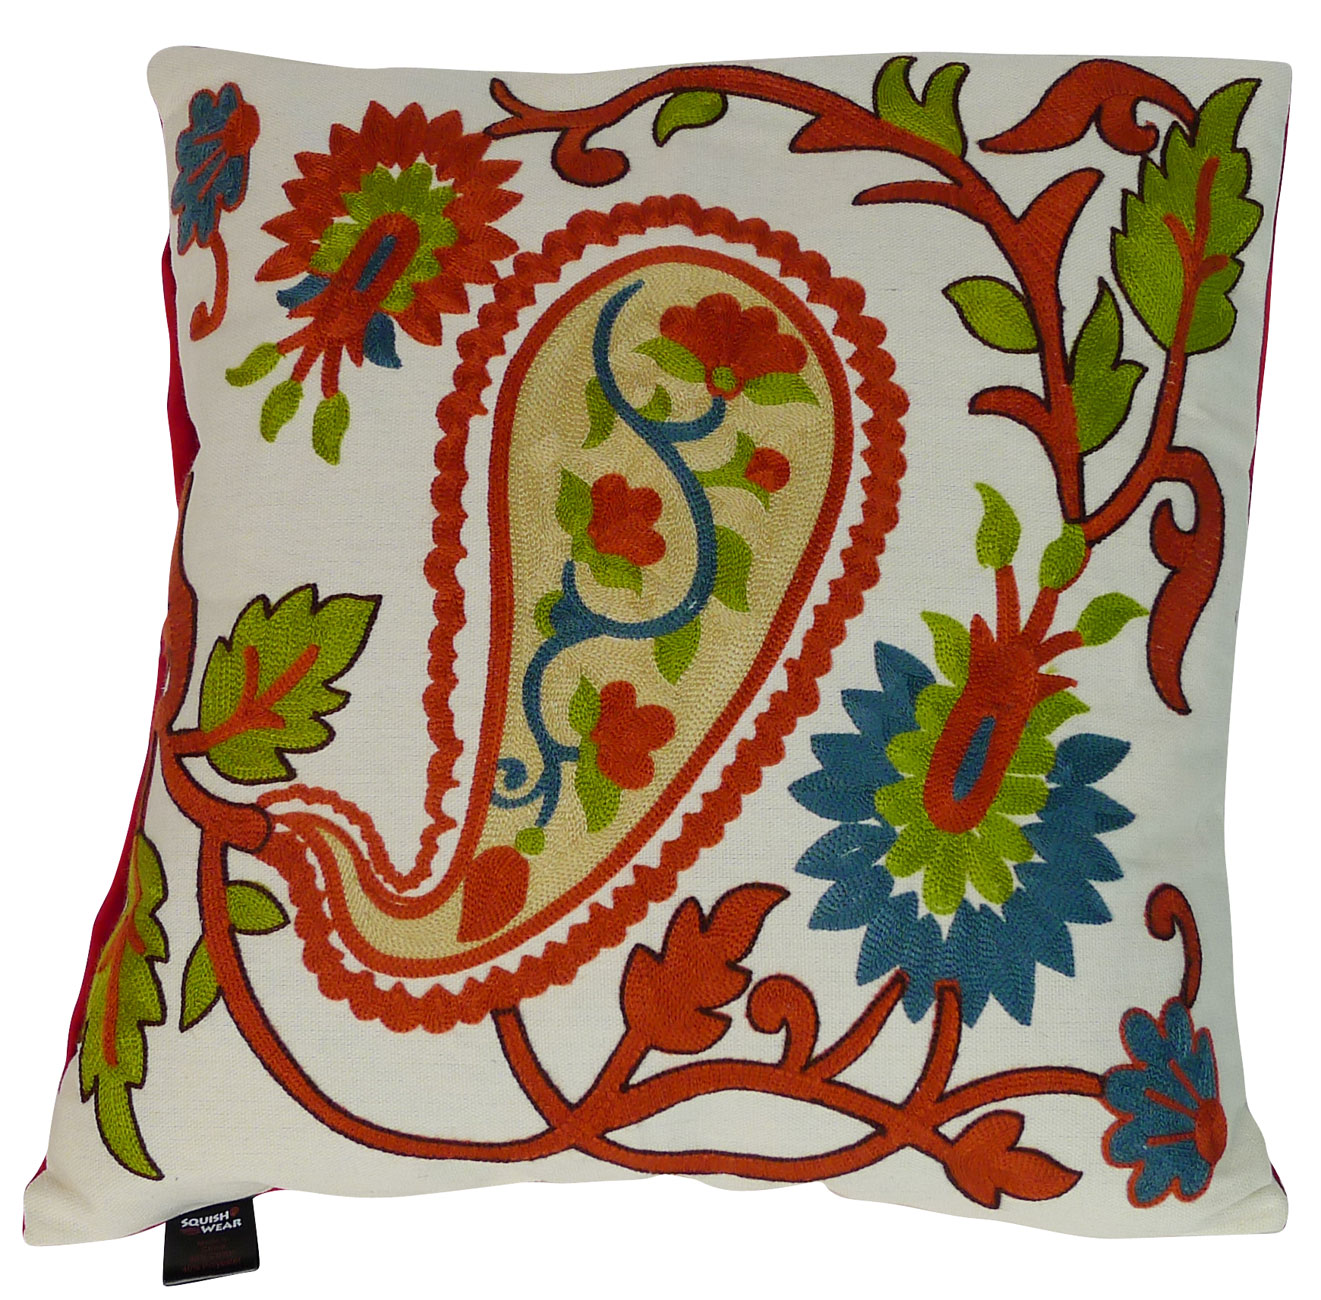 Image of Ivy Pillow Embroidered Cover